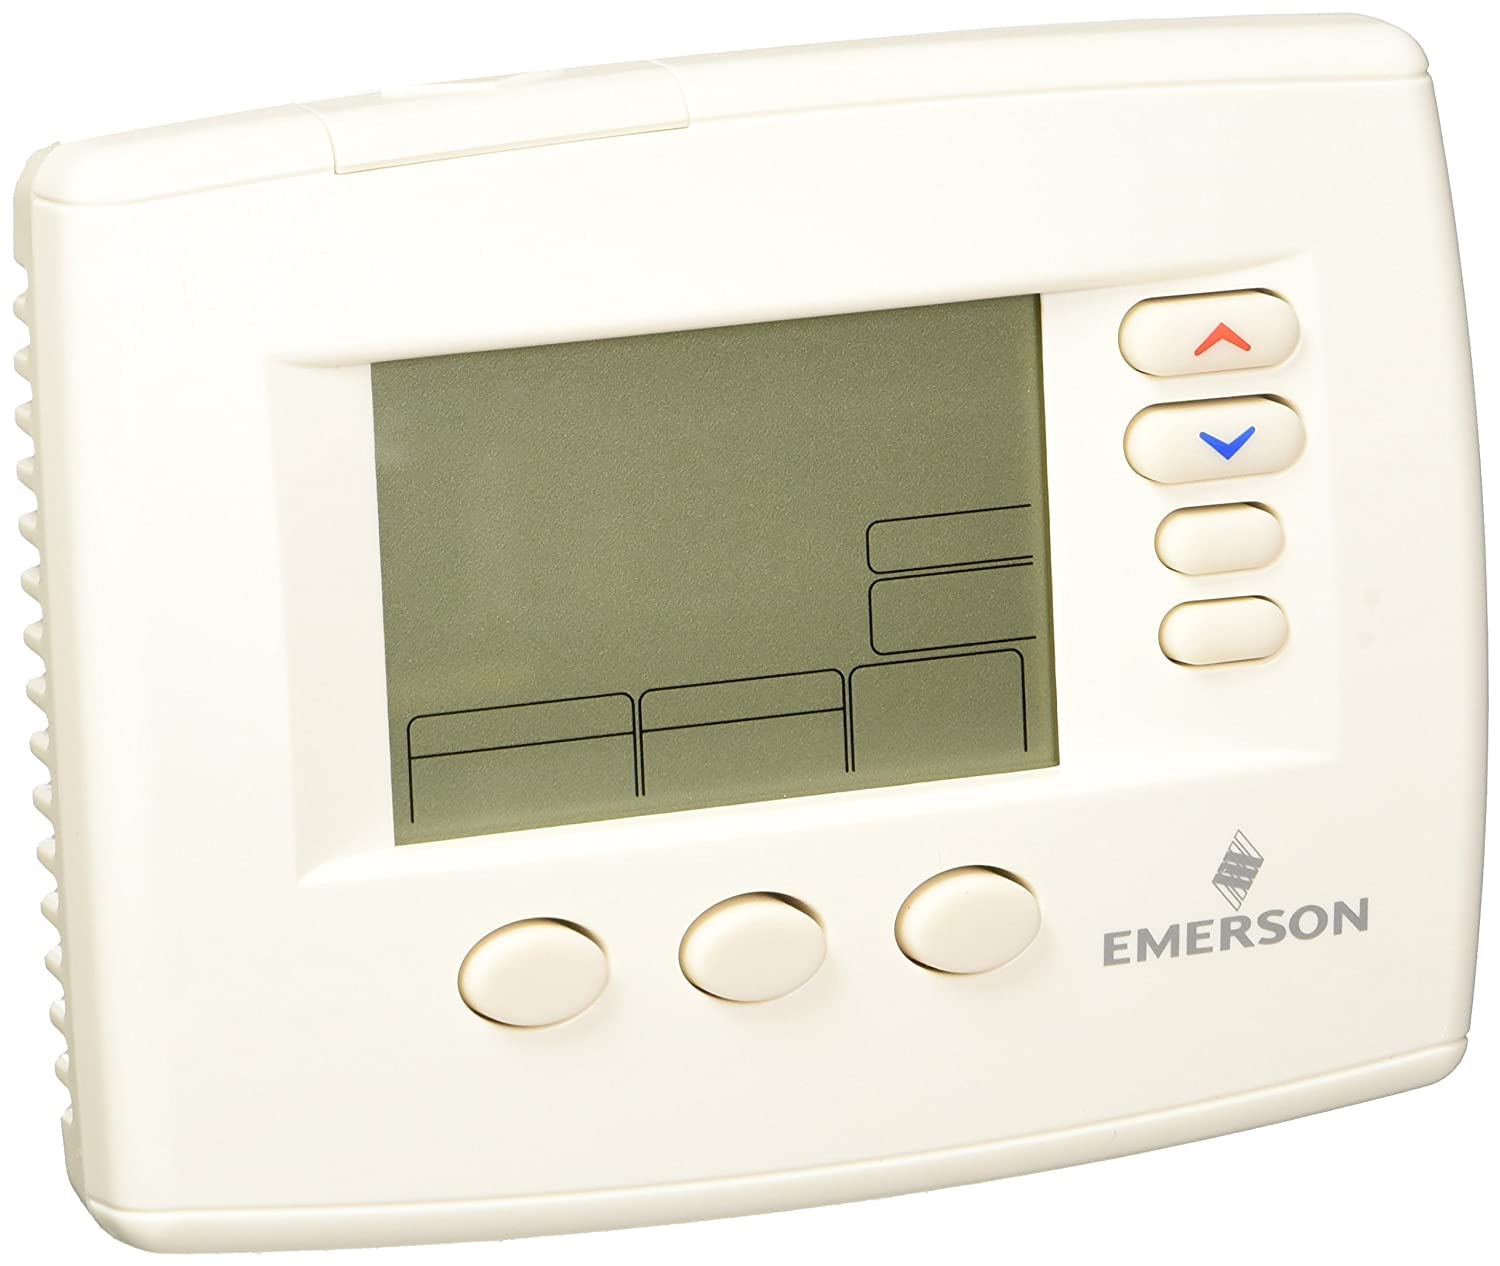 Emerson Digital Thermostat Wiring Diagram 1f85